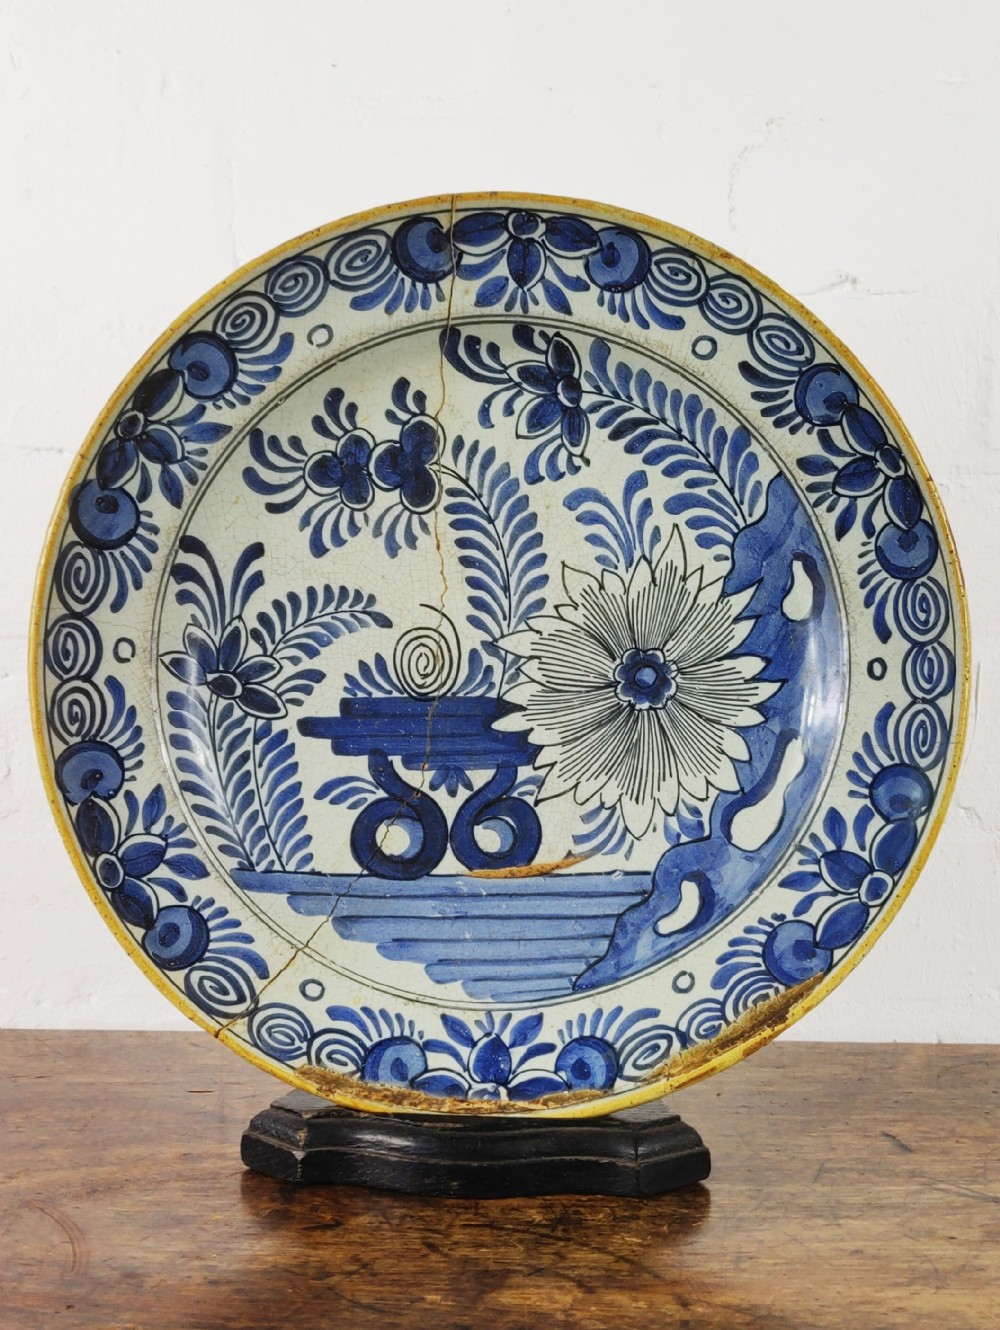 a early 18th century delft bowl by pieter kocx 1701 1722